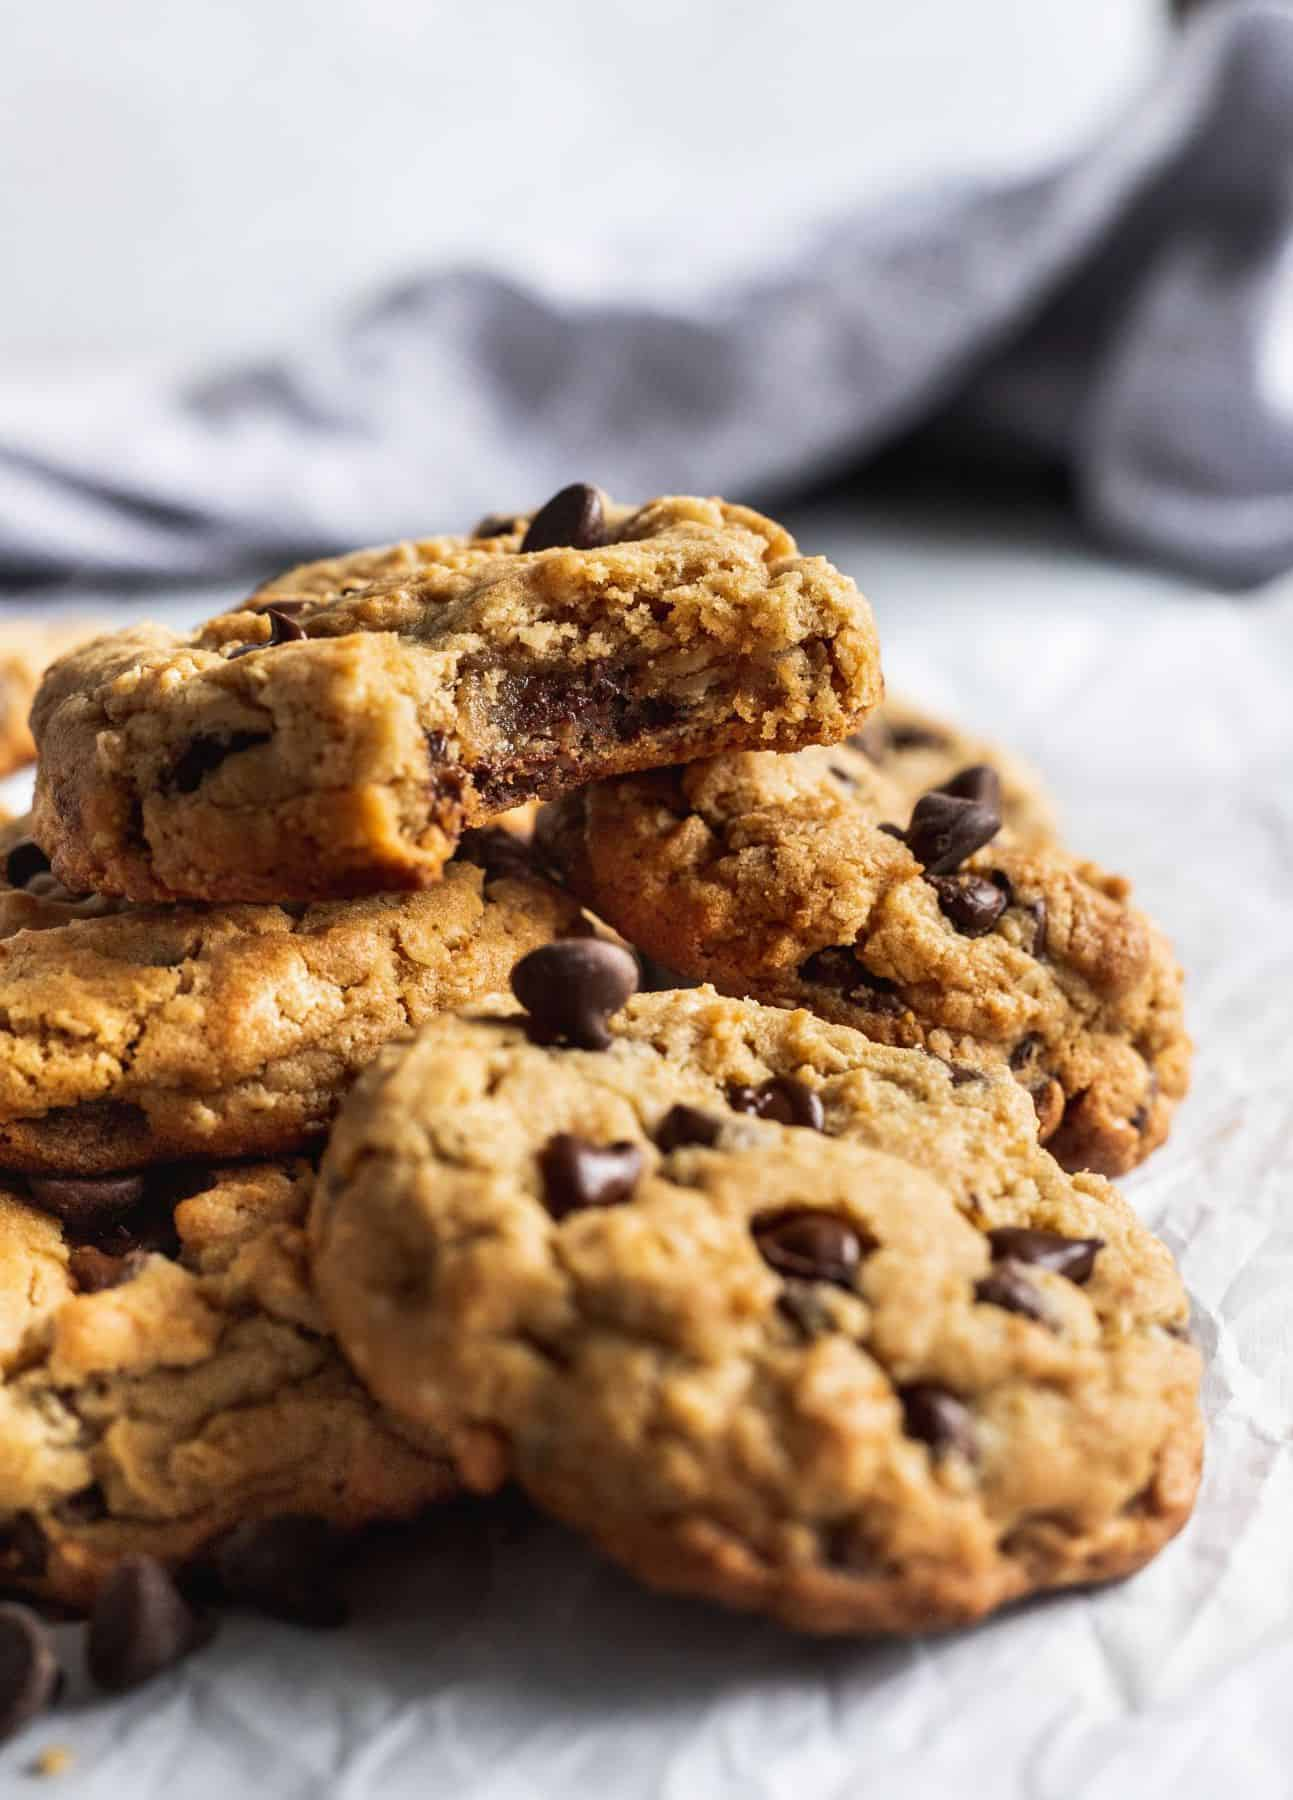 A pile of oatmeal peanut butter chocolate chip cookies with 1 cookie with a bite missing on top.